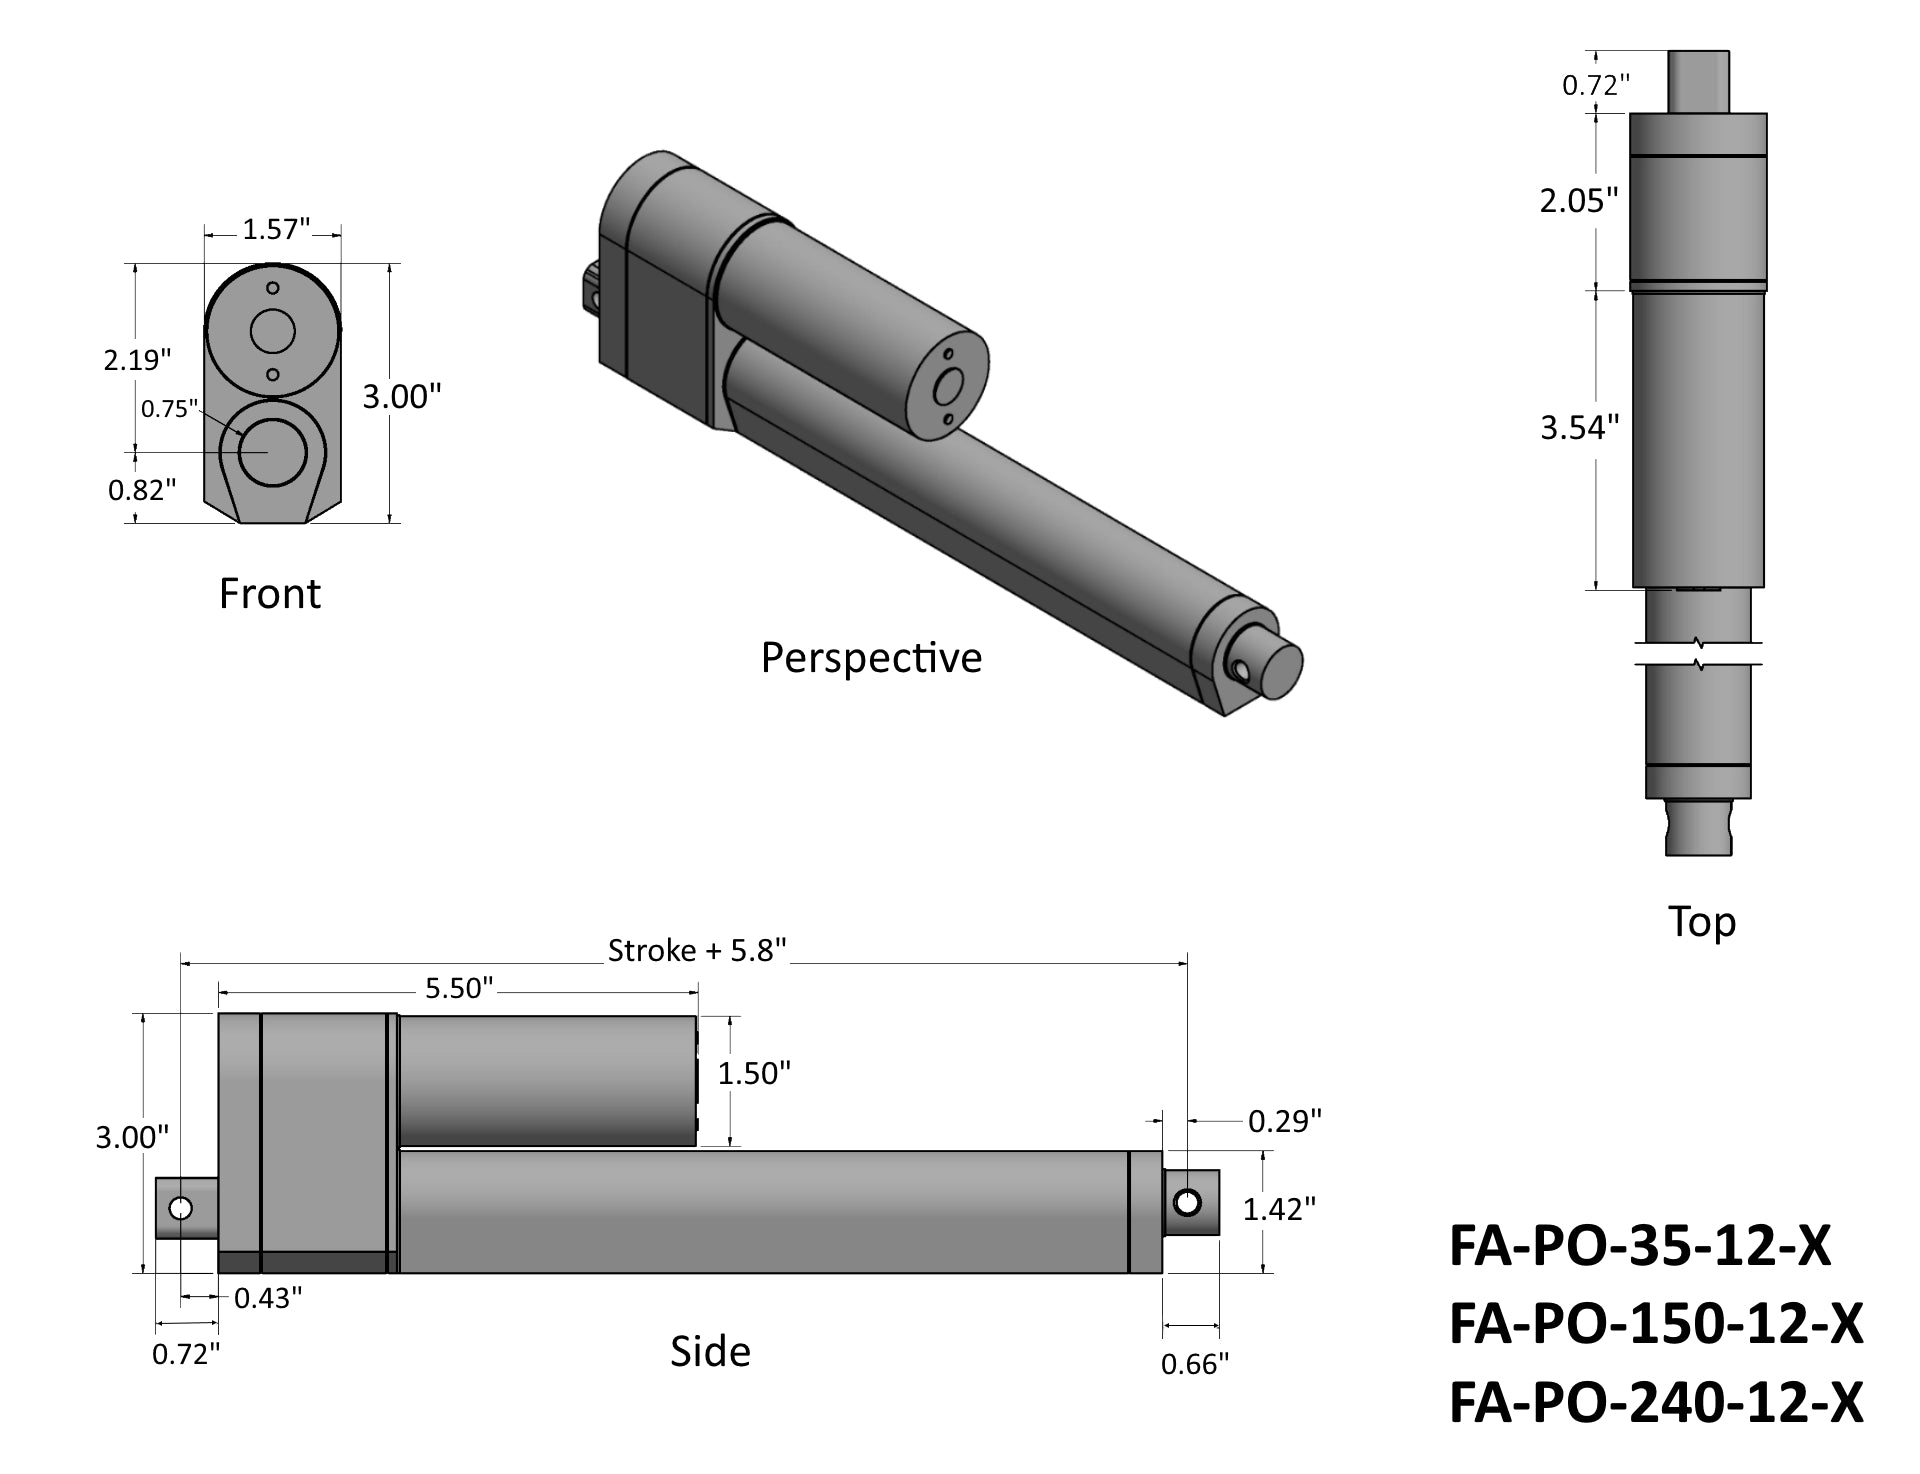 Feedback Rod Linear Actuator Firgelli Automations 12v Wiring Diagram All Actuators Are Compatible With The Actuonix Control Board Also Known As Lac More Information Can Be Found By